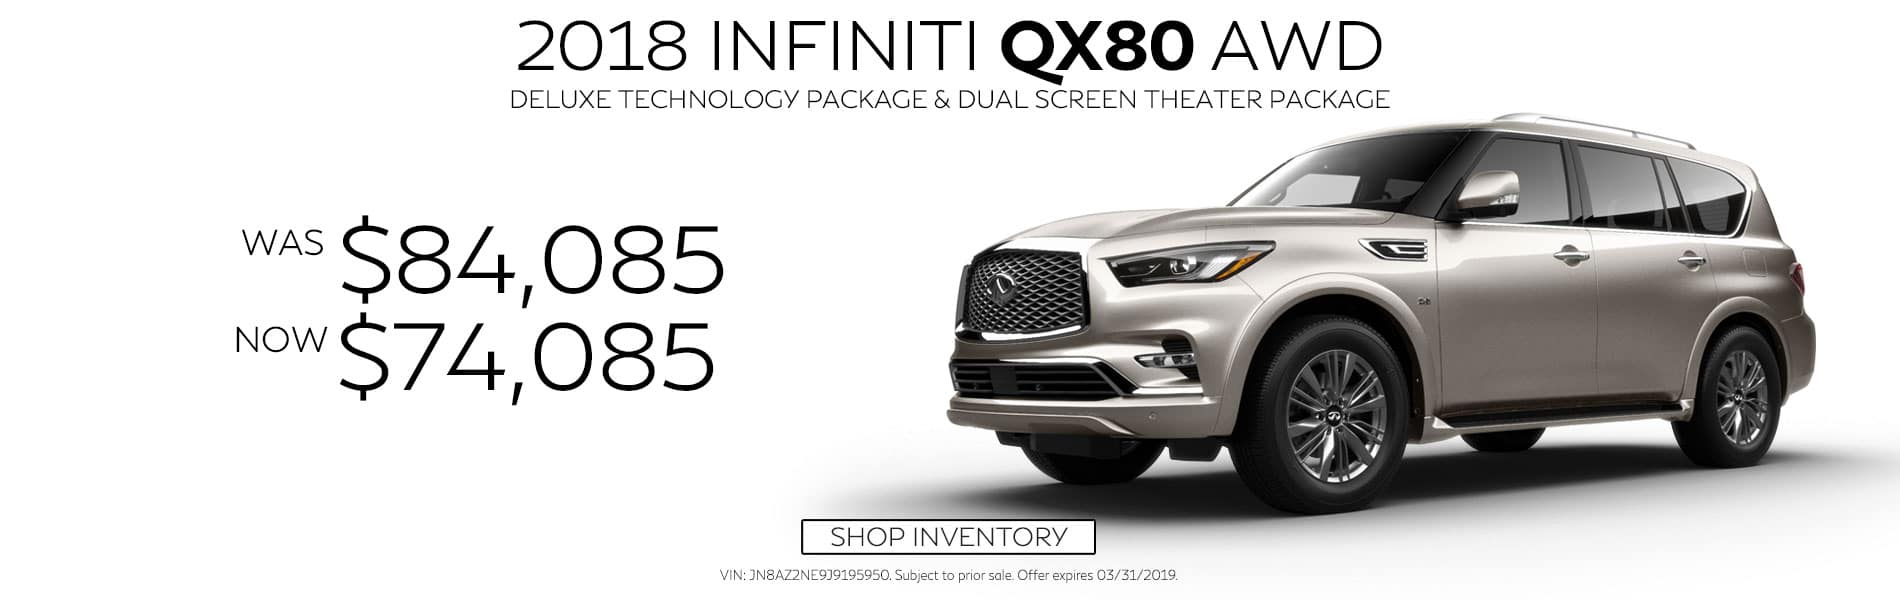 Purchase a loaded 2018 INFINITI QX80 4WD for $74,085. Original price was $84,085